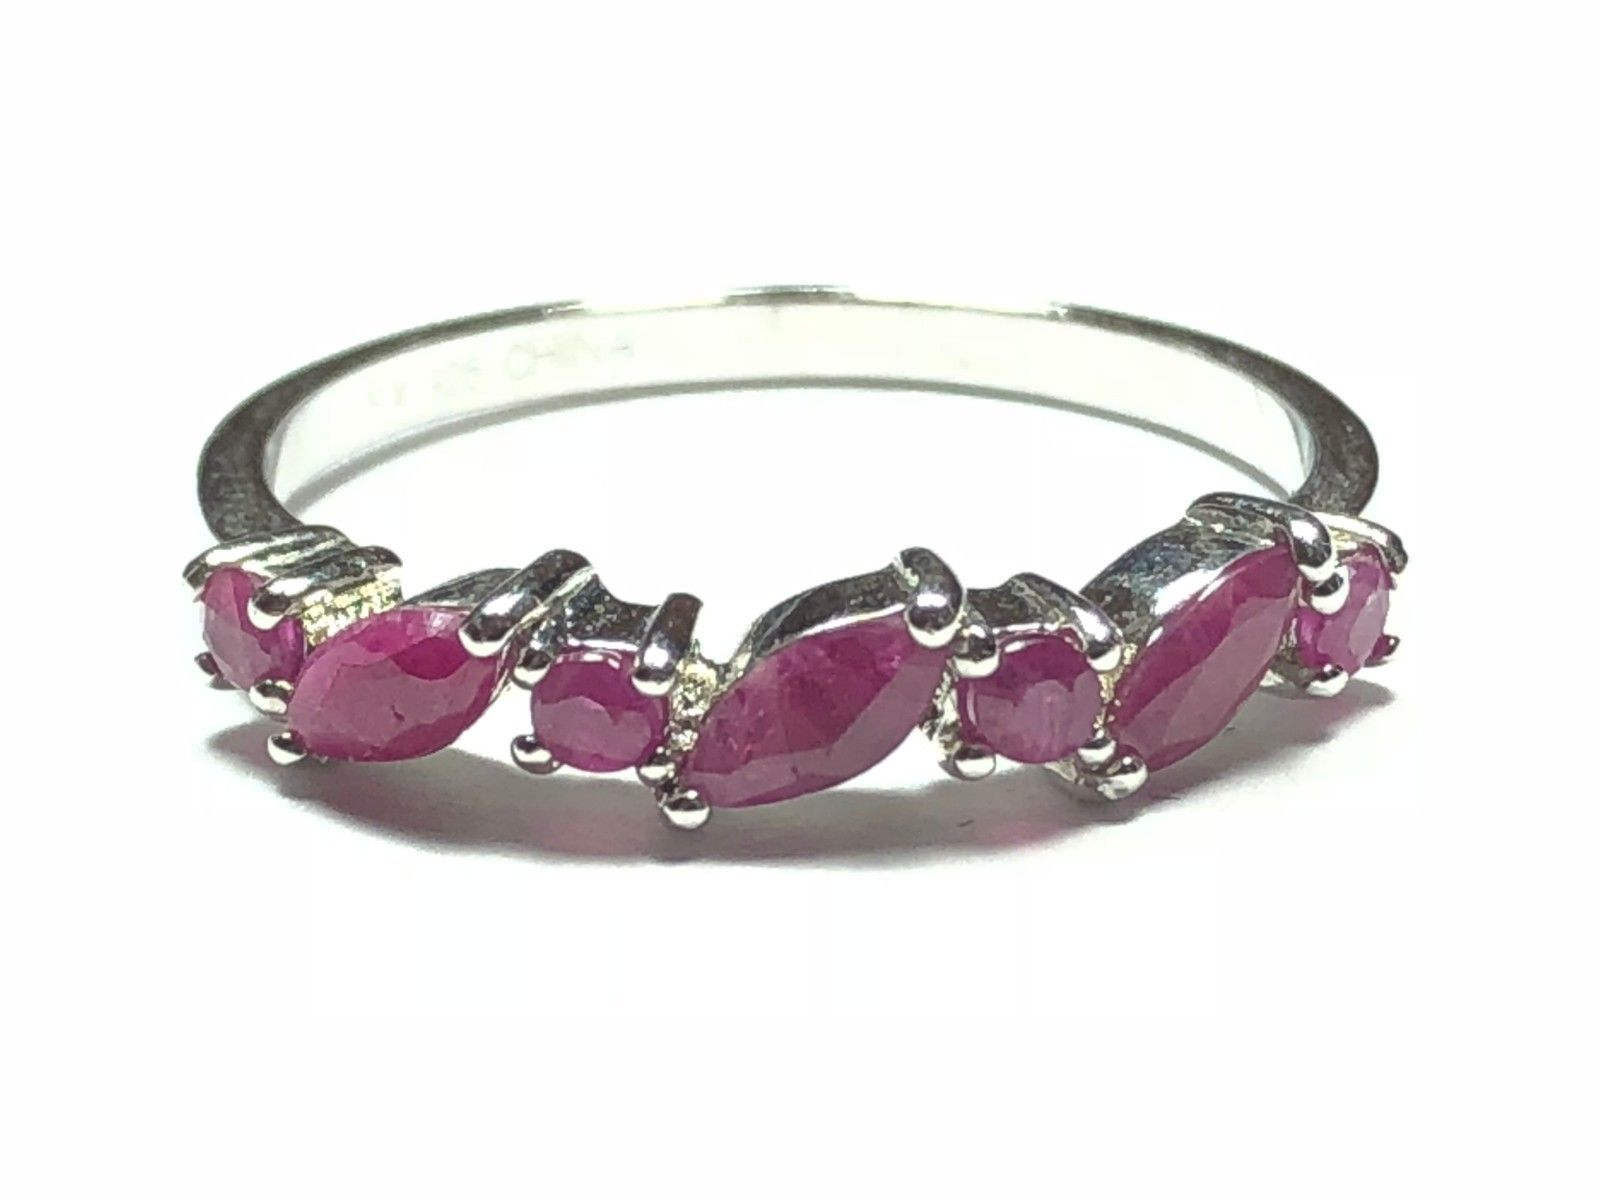 Beautiful Ladies Sterling Silver Ring - Purple Topaz - Must Have! - Size 9.25